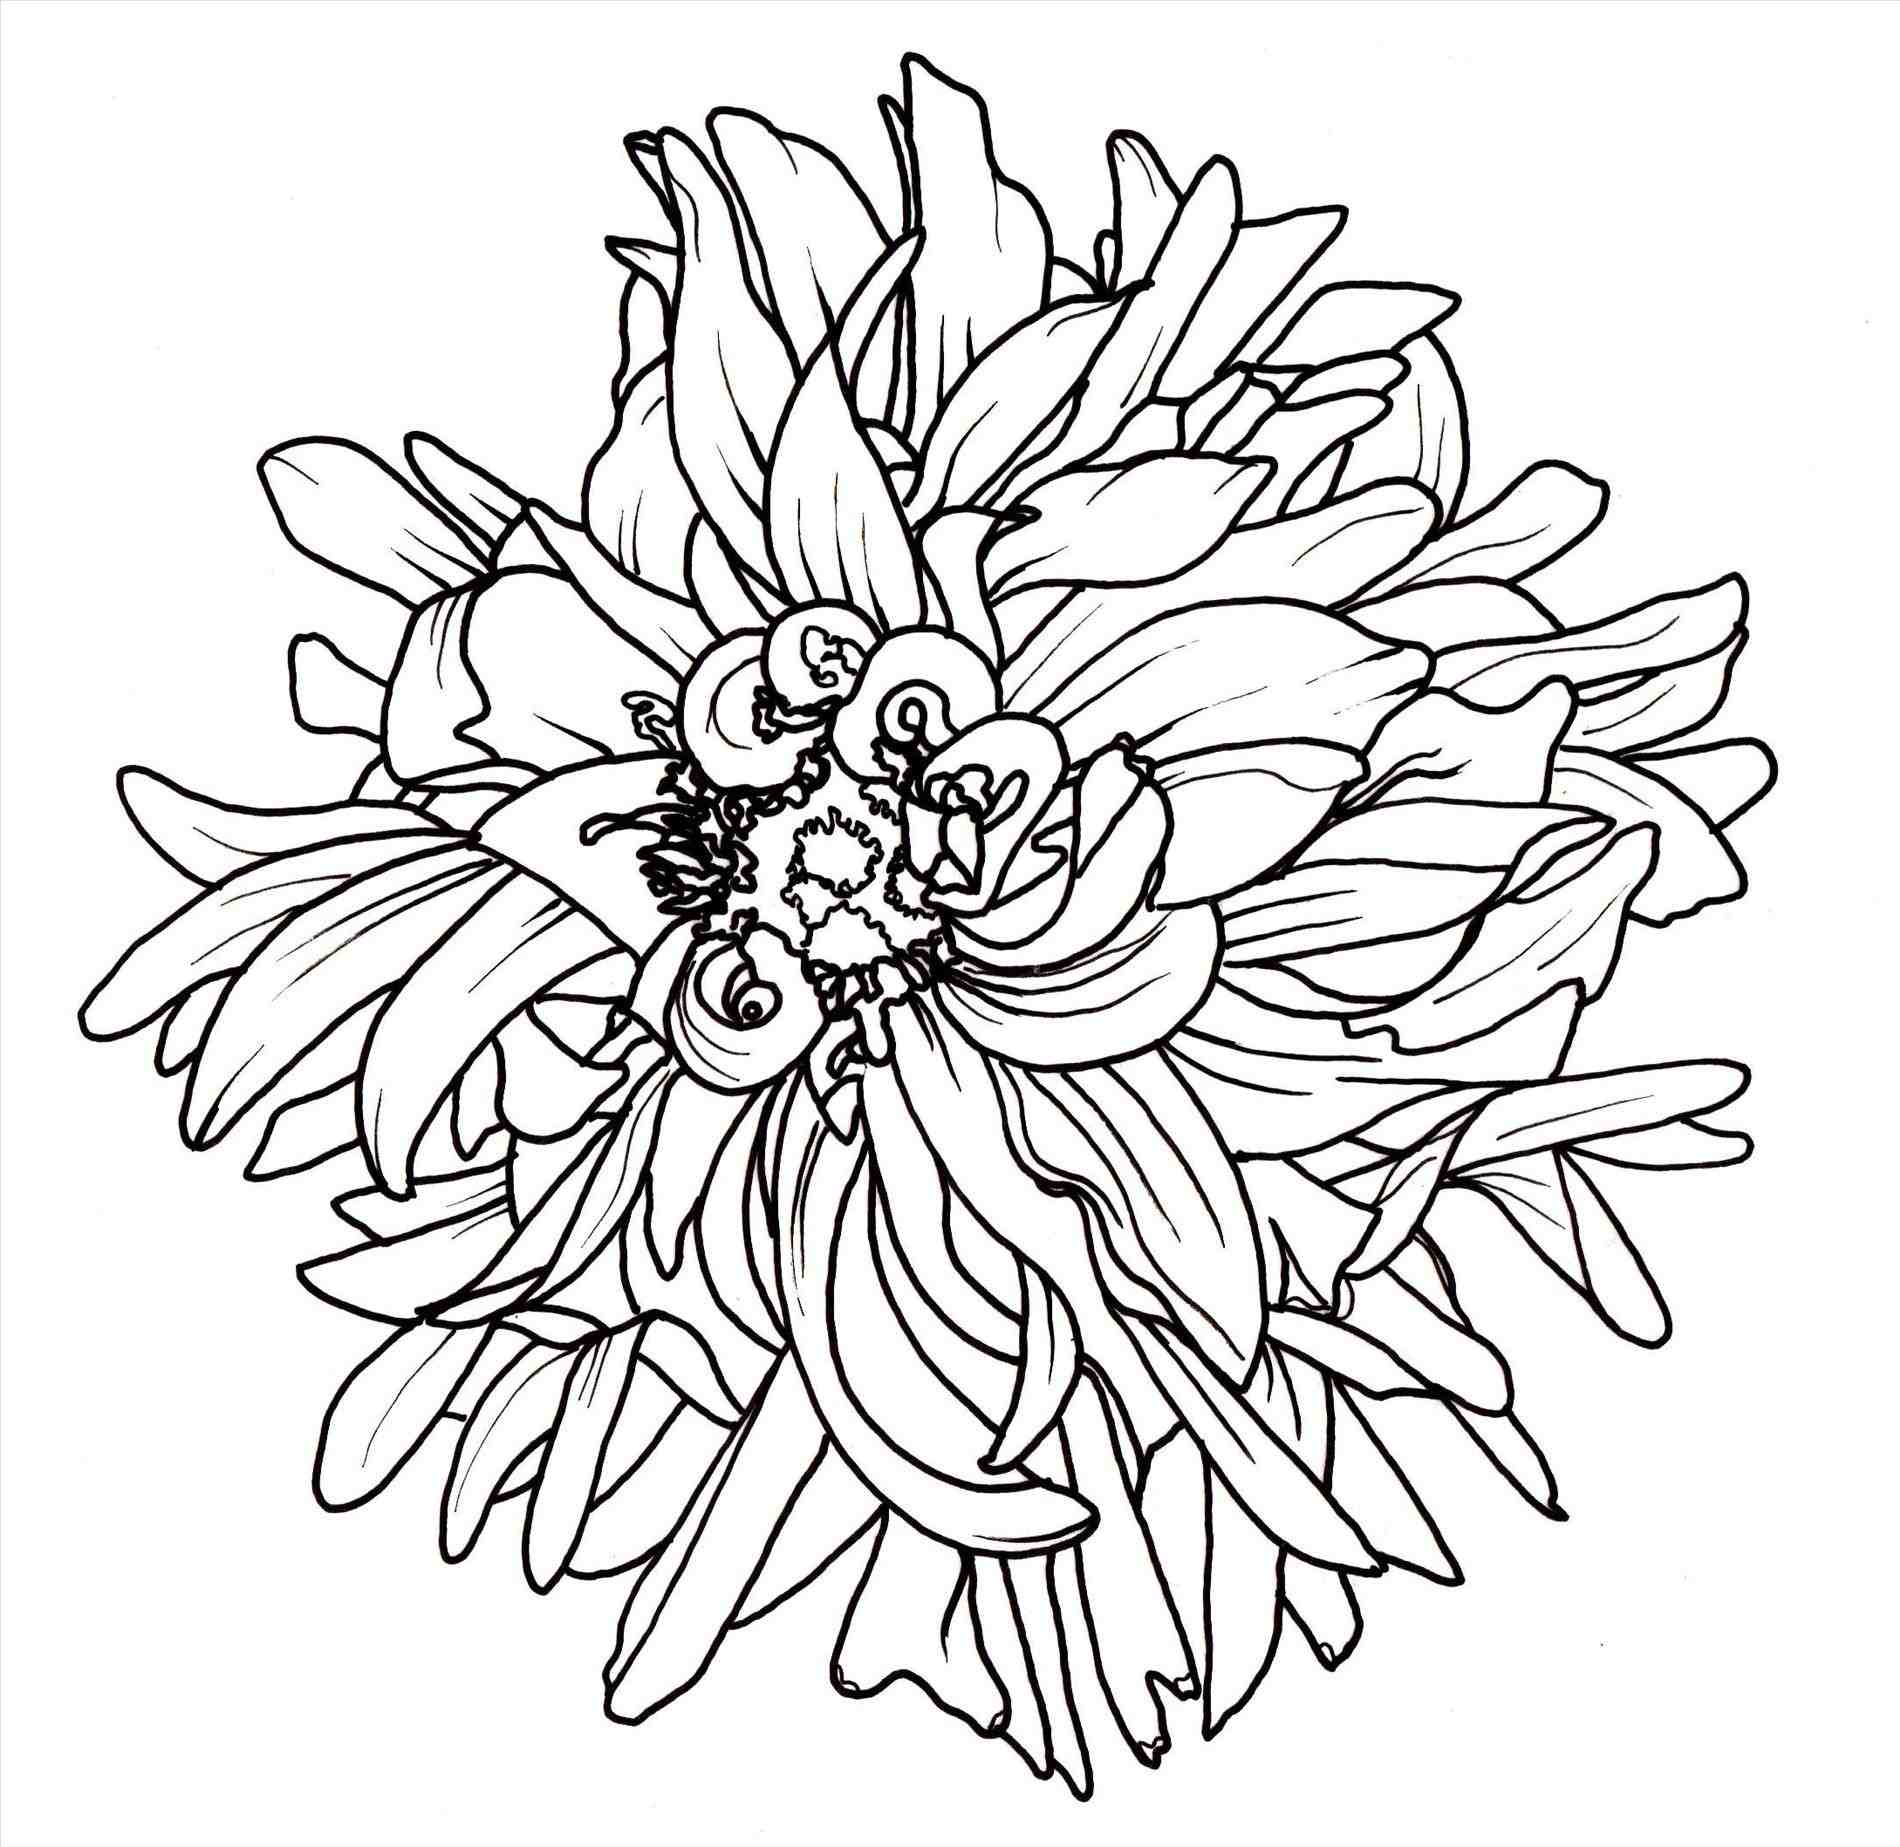 1900x1847 Flower Line Drawings